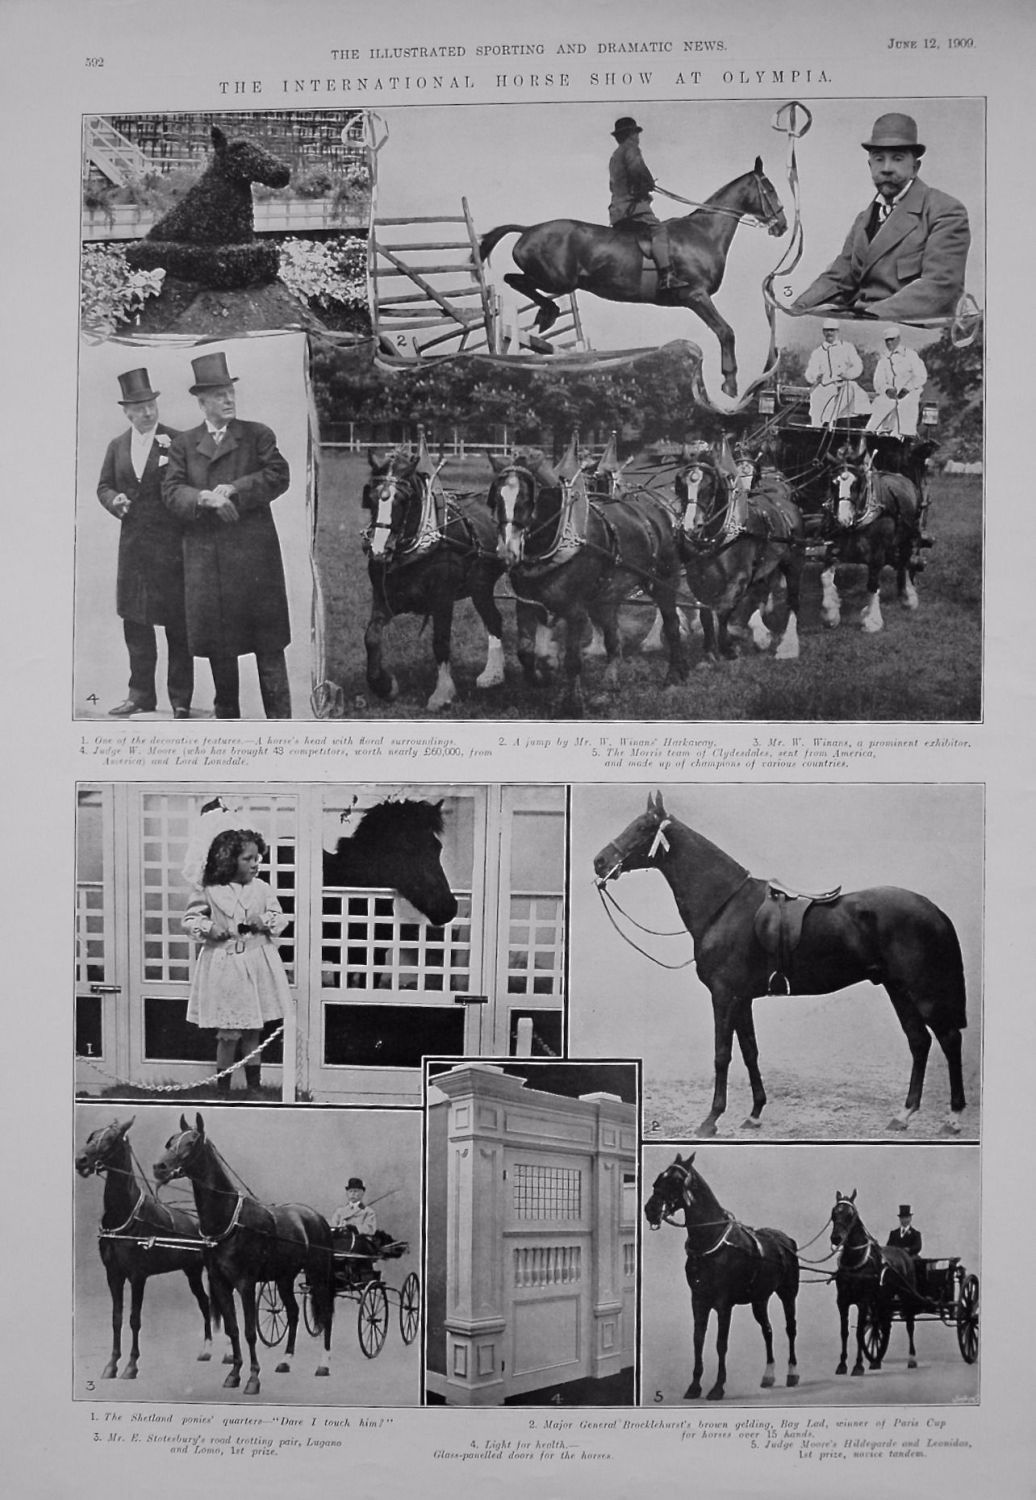 International Horse Show at Olympia. 1909